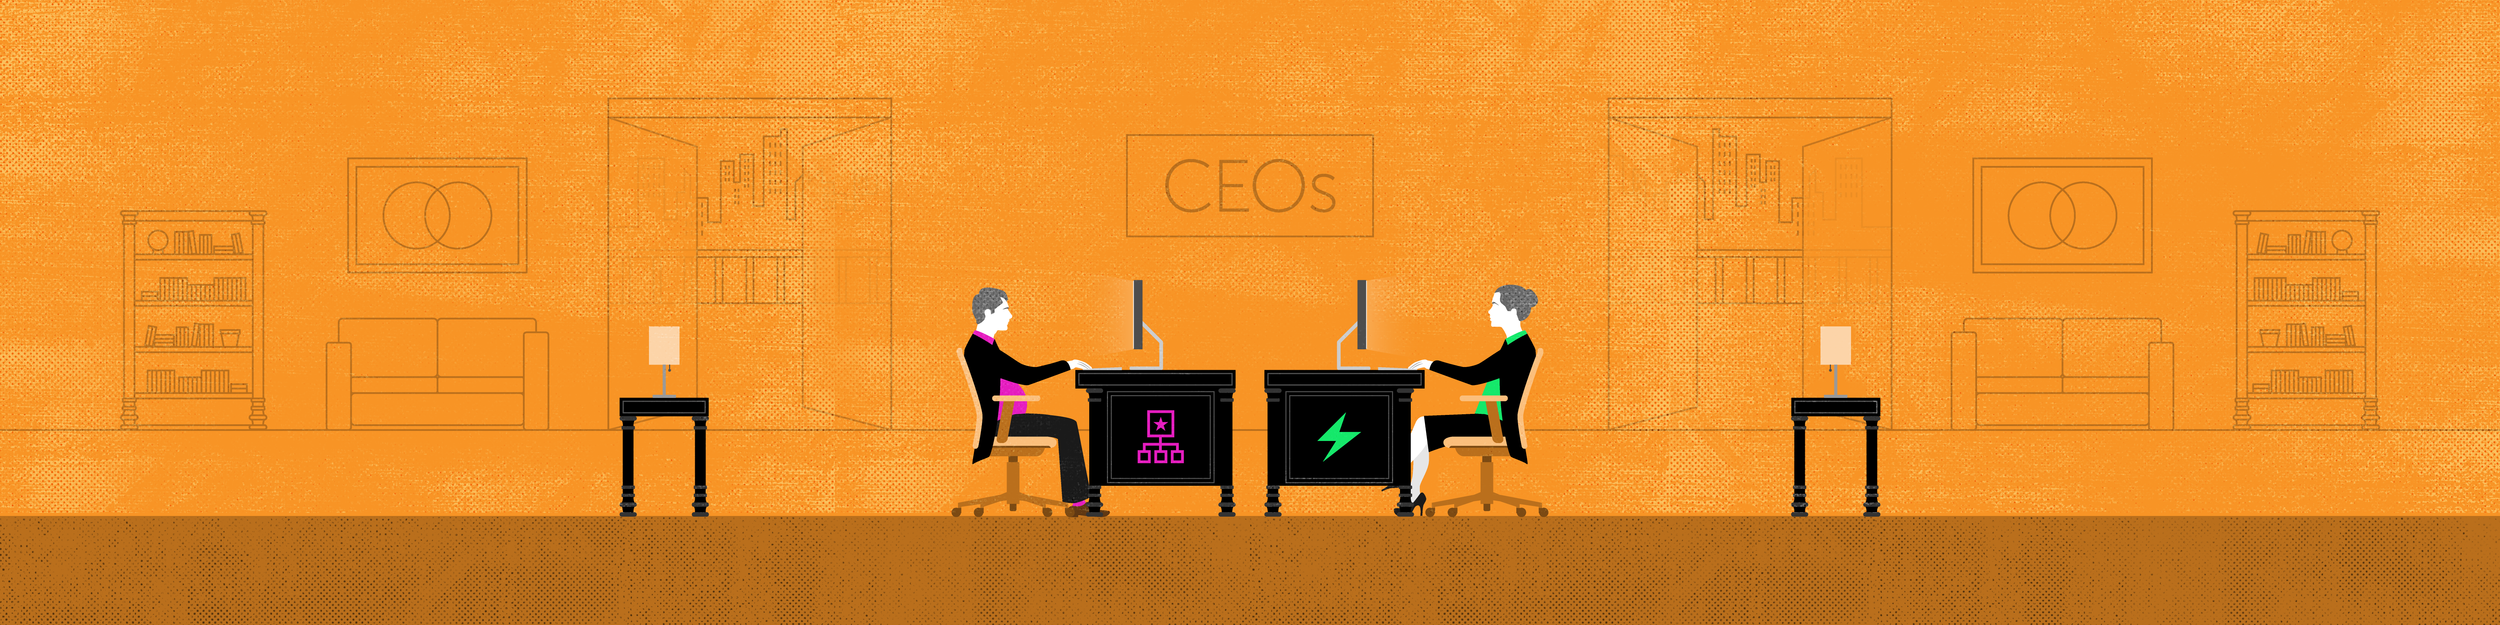 Thought-Leadership-Newscred-illustrations-v7-PM-texture-The-Other-CEO.png